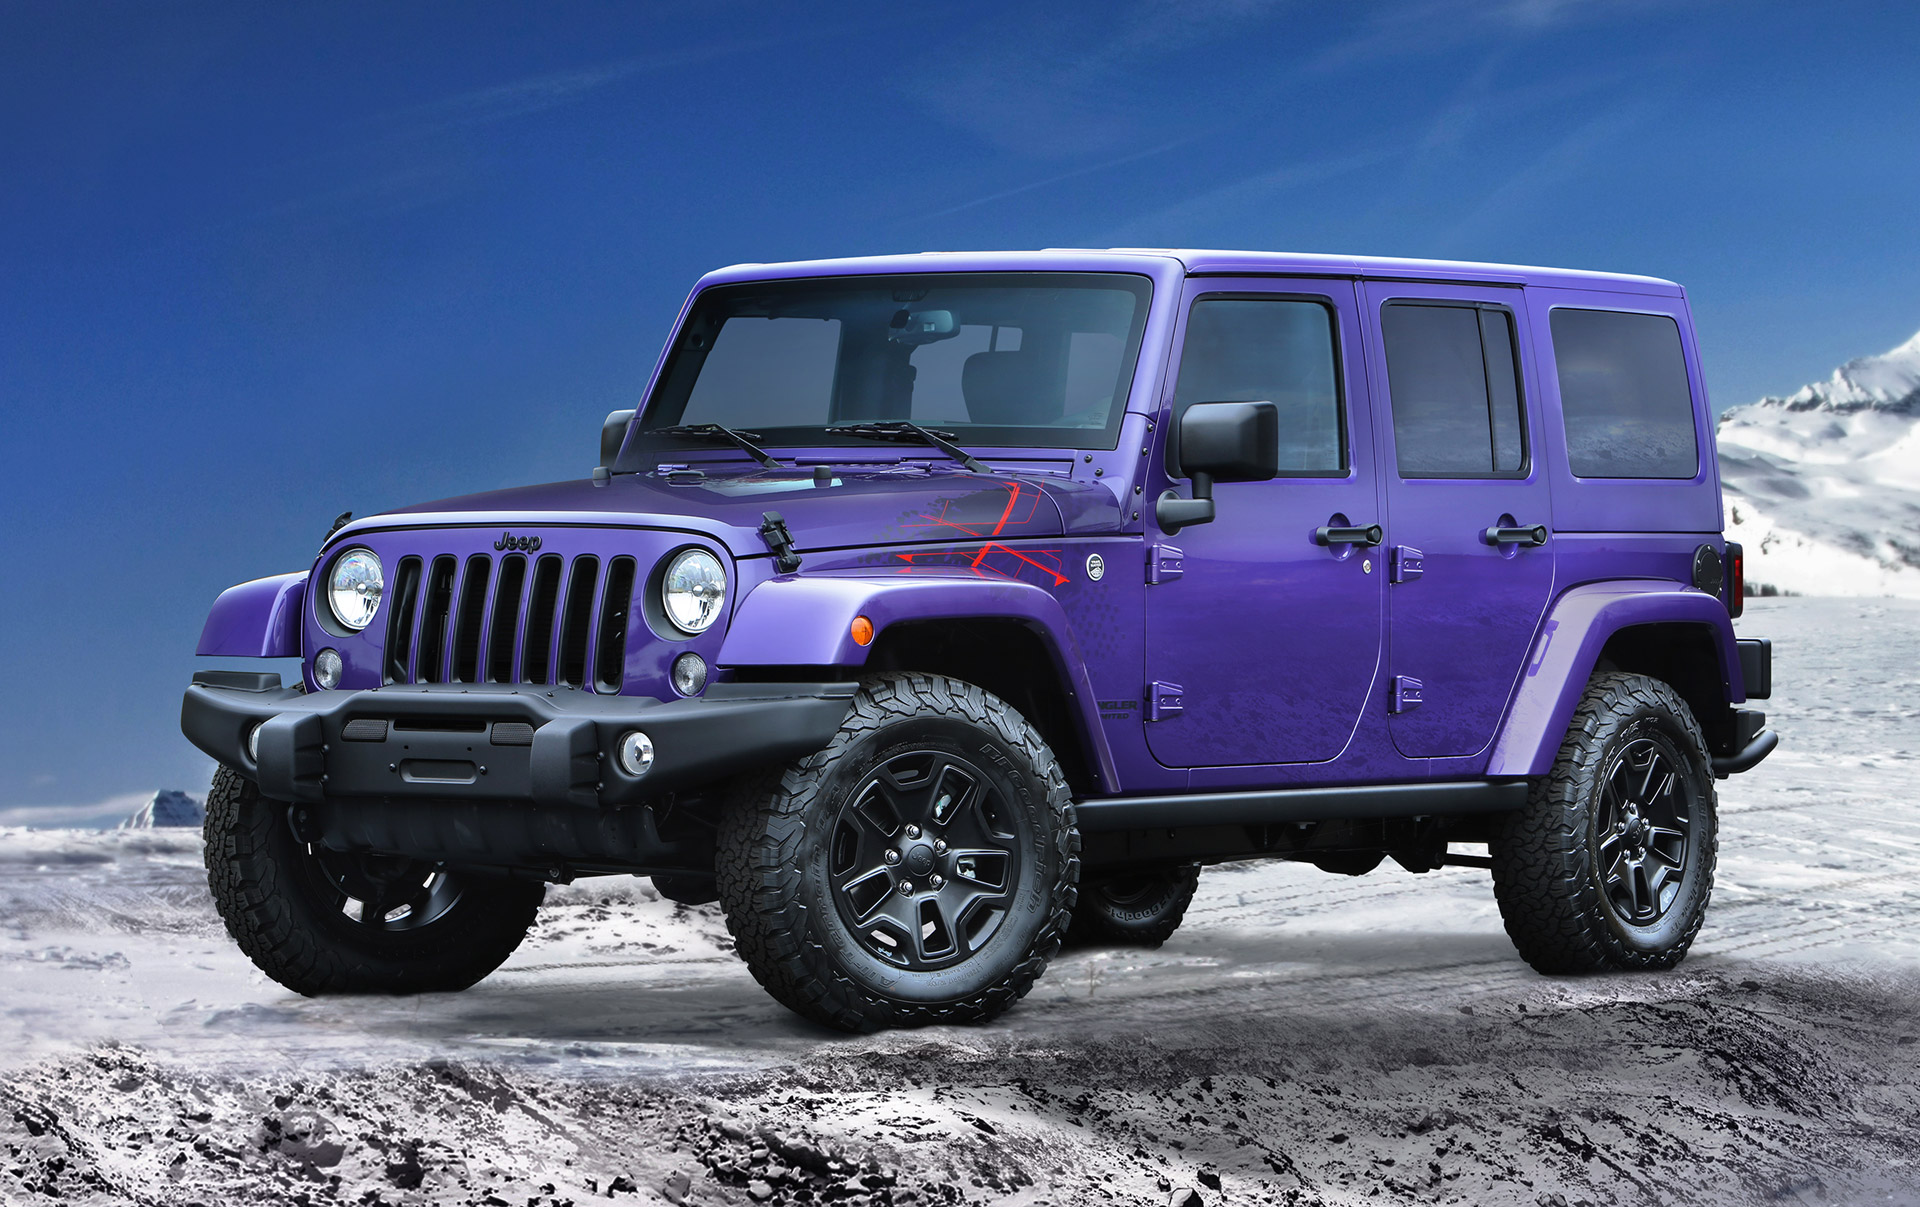 2018 Jeep Wrangler JK Review, Ratings, Specs, Prices, and Photos - The Car  Connection